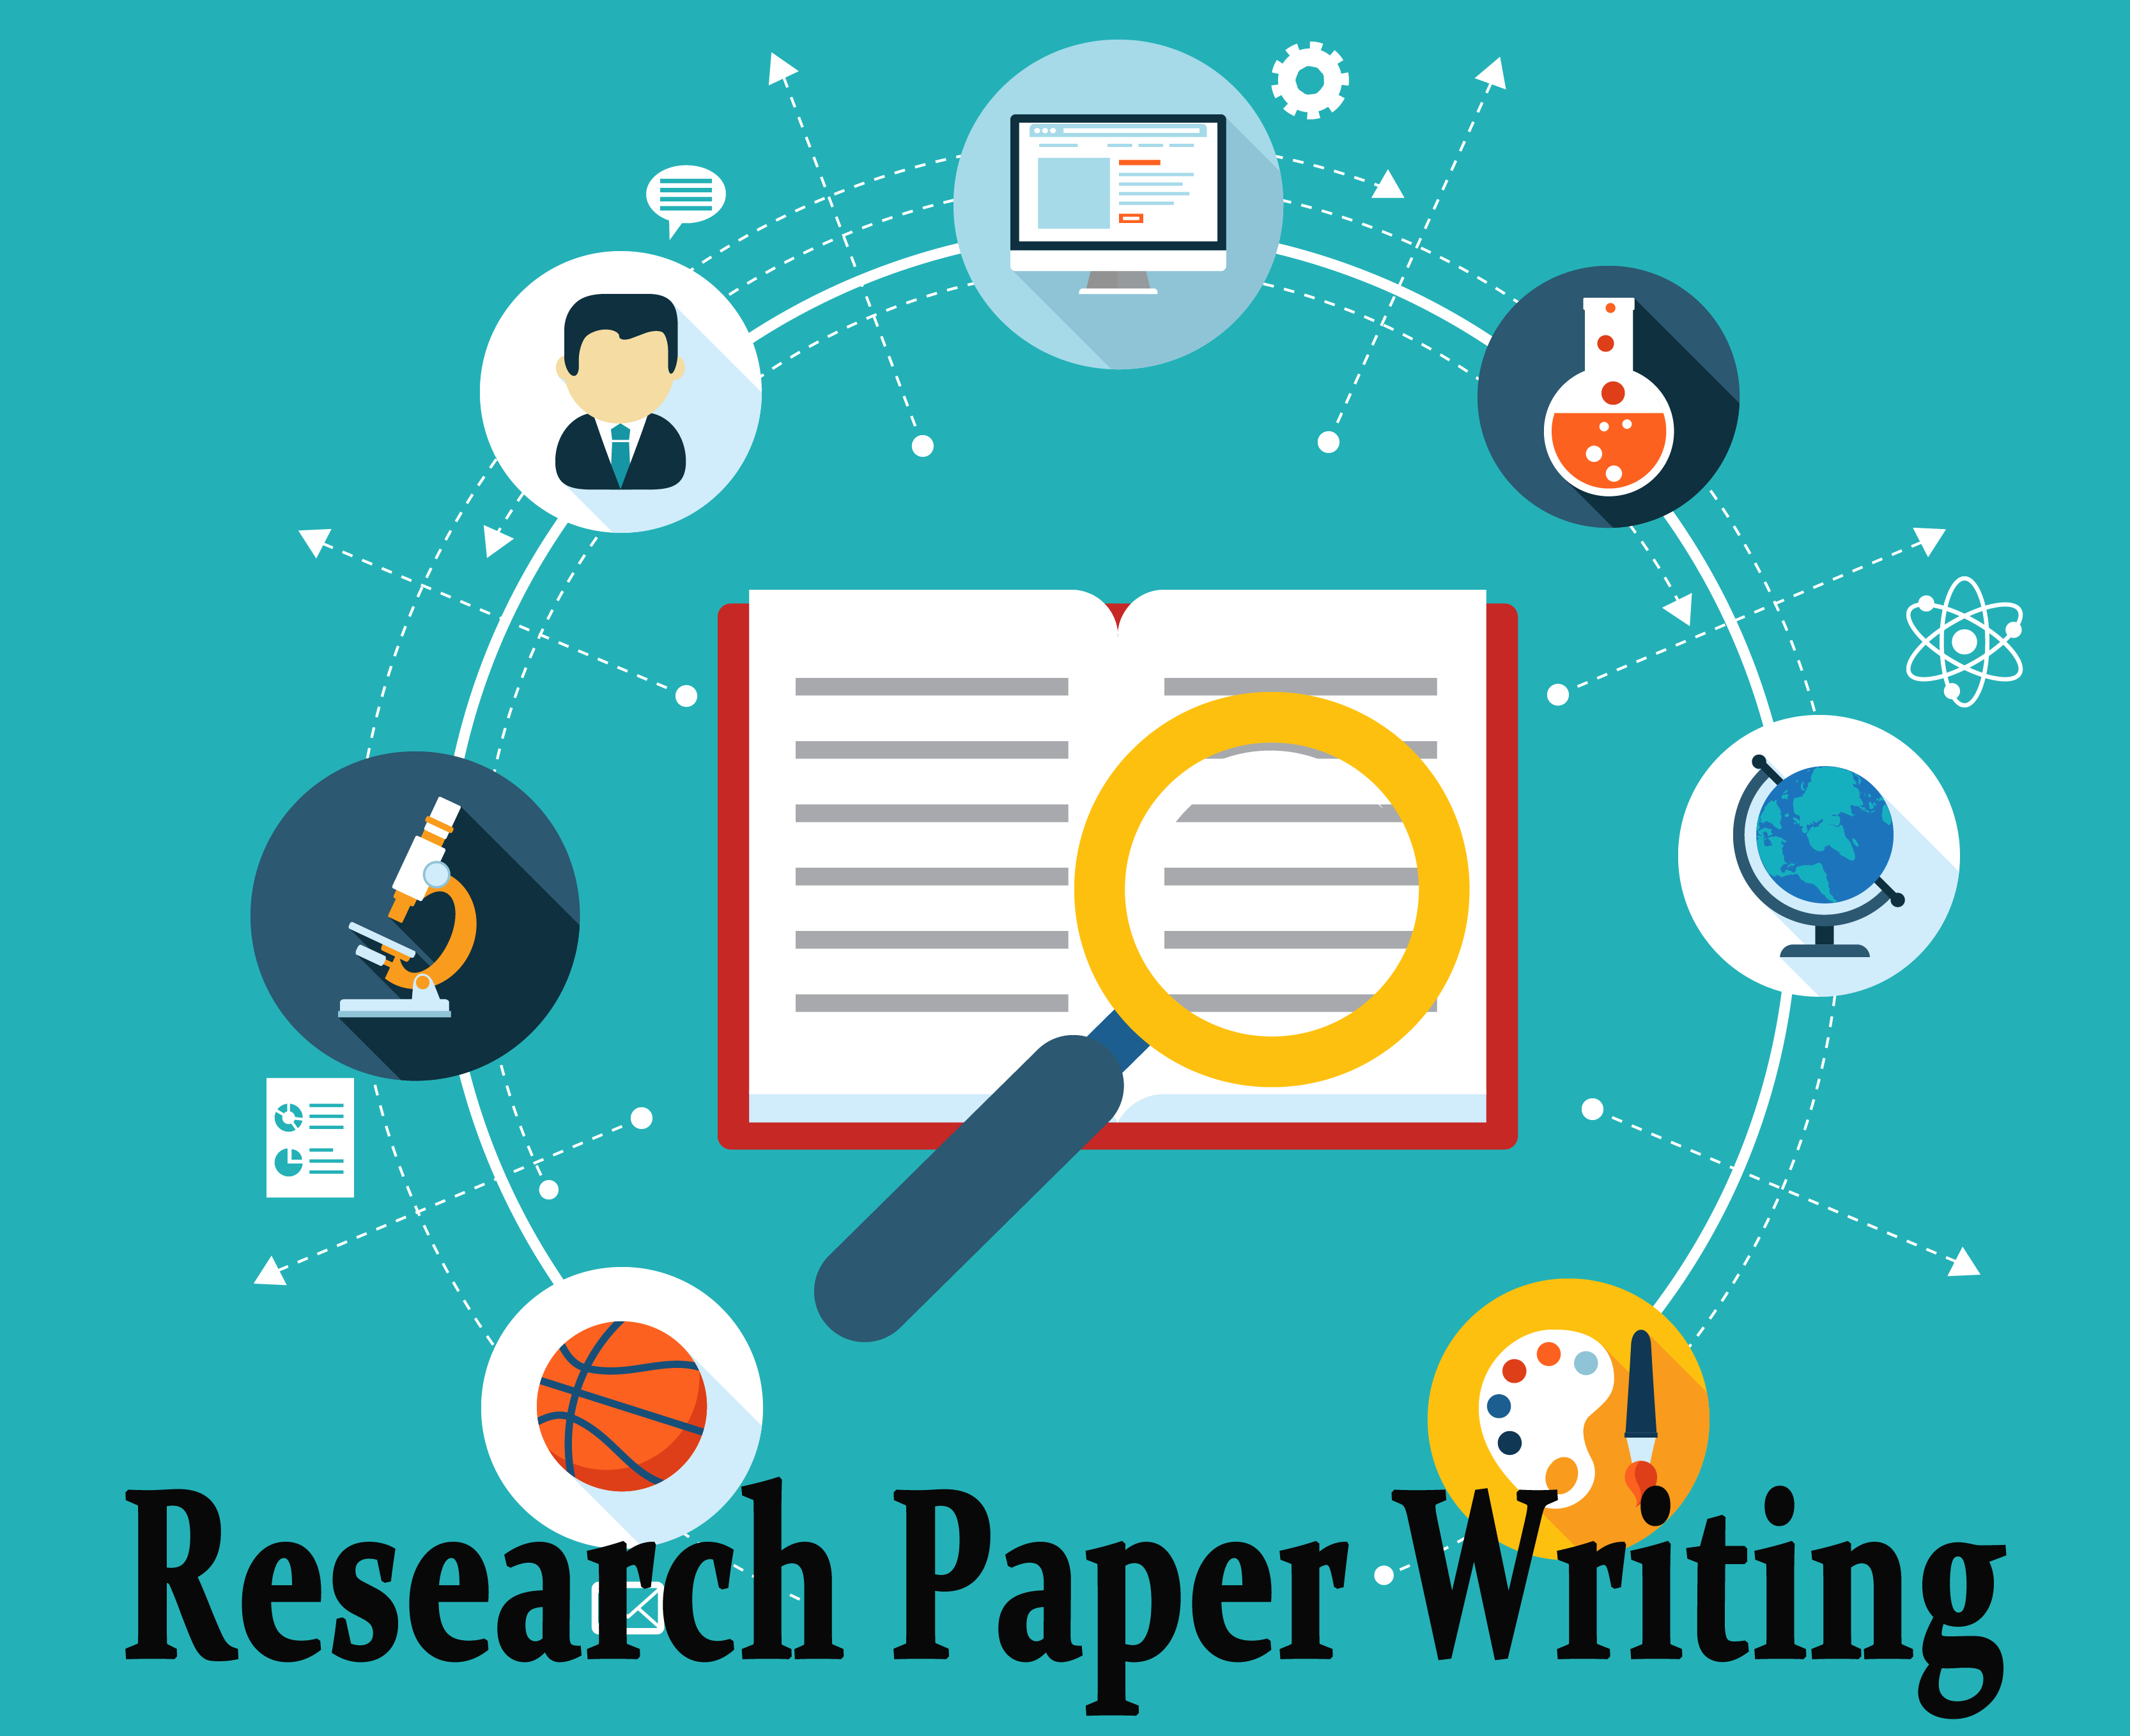 009 Writing The Research Paper 503 Effective Phenomenal Papers A Complete Guide 15th Edition Pdf Abstract Ppt Biomedical Full